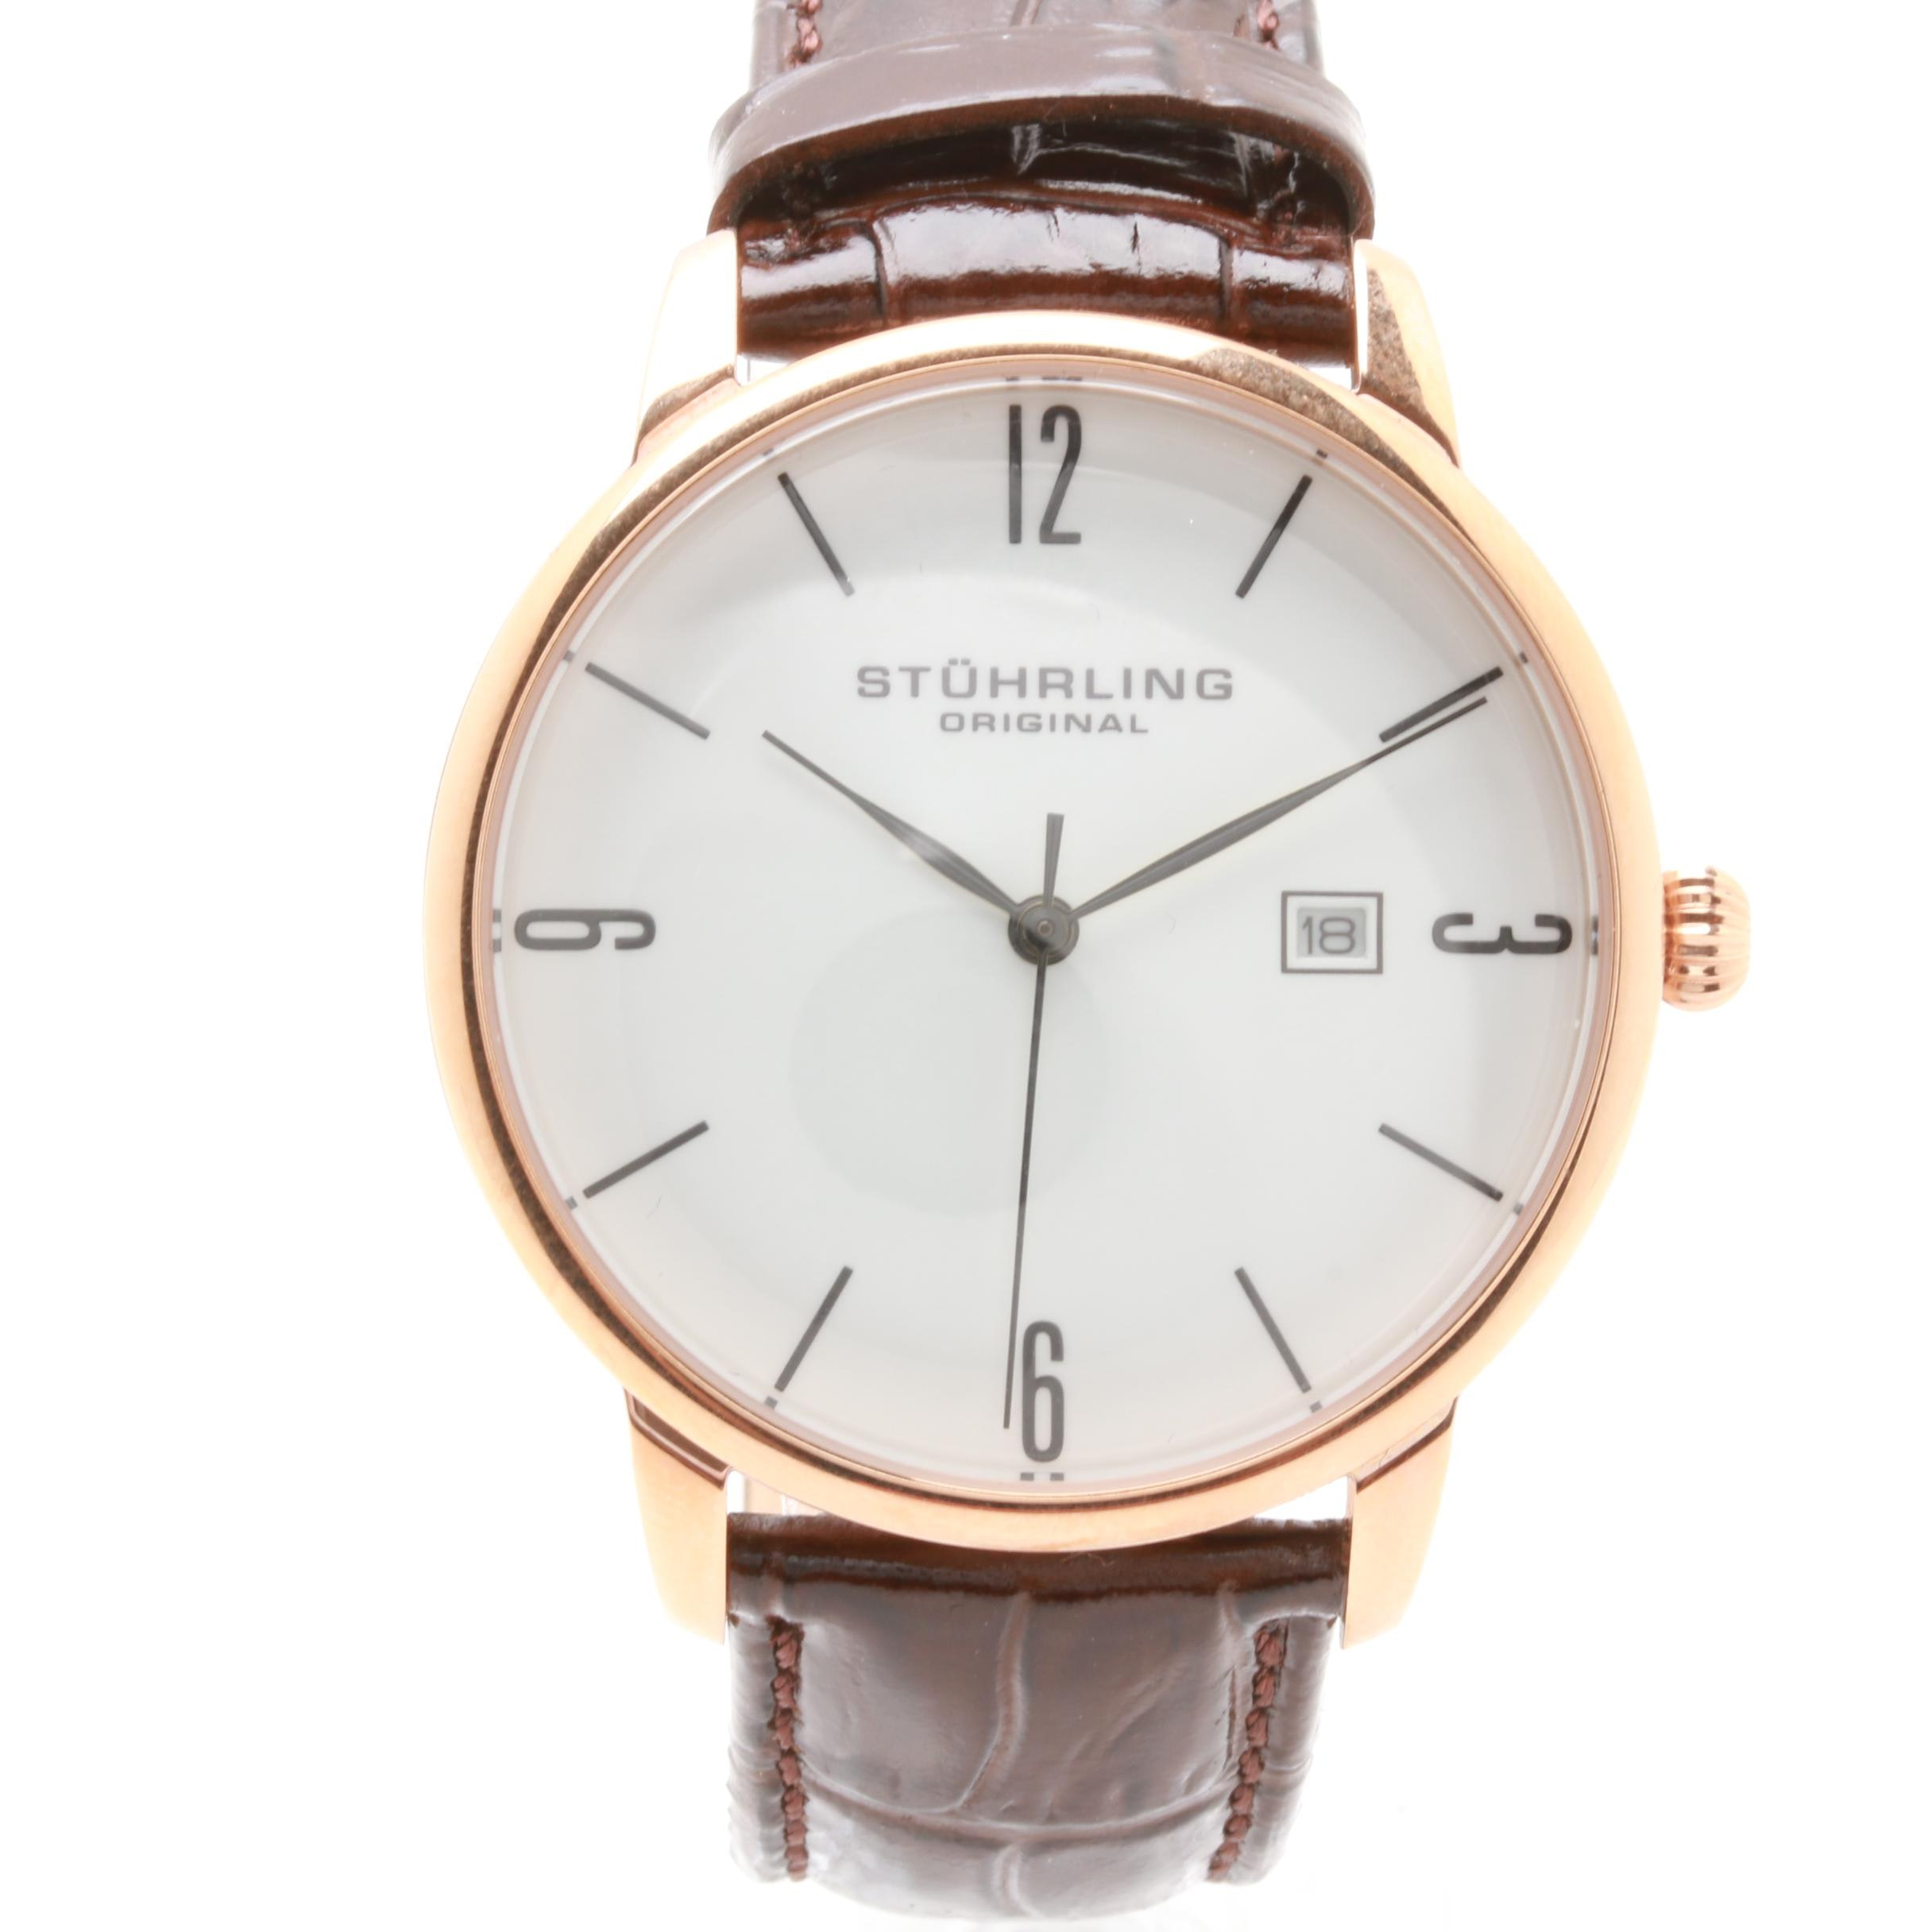 Stührling Original Rose Tone Stainless Steel Wristwatch